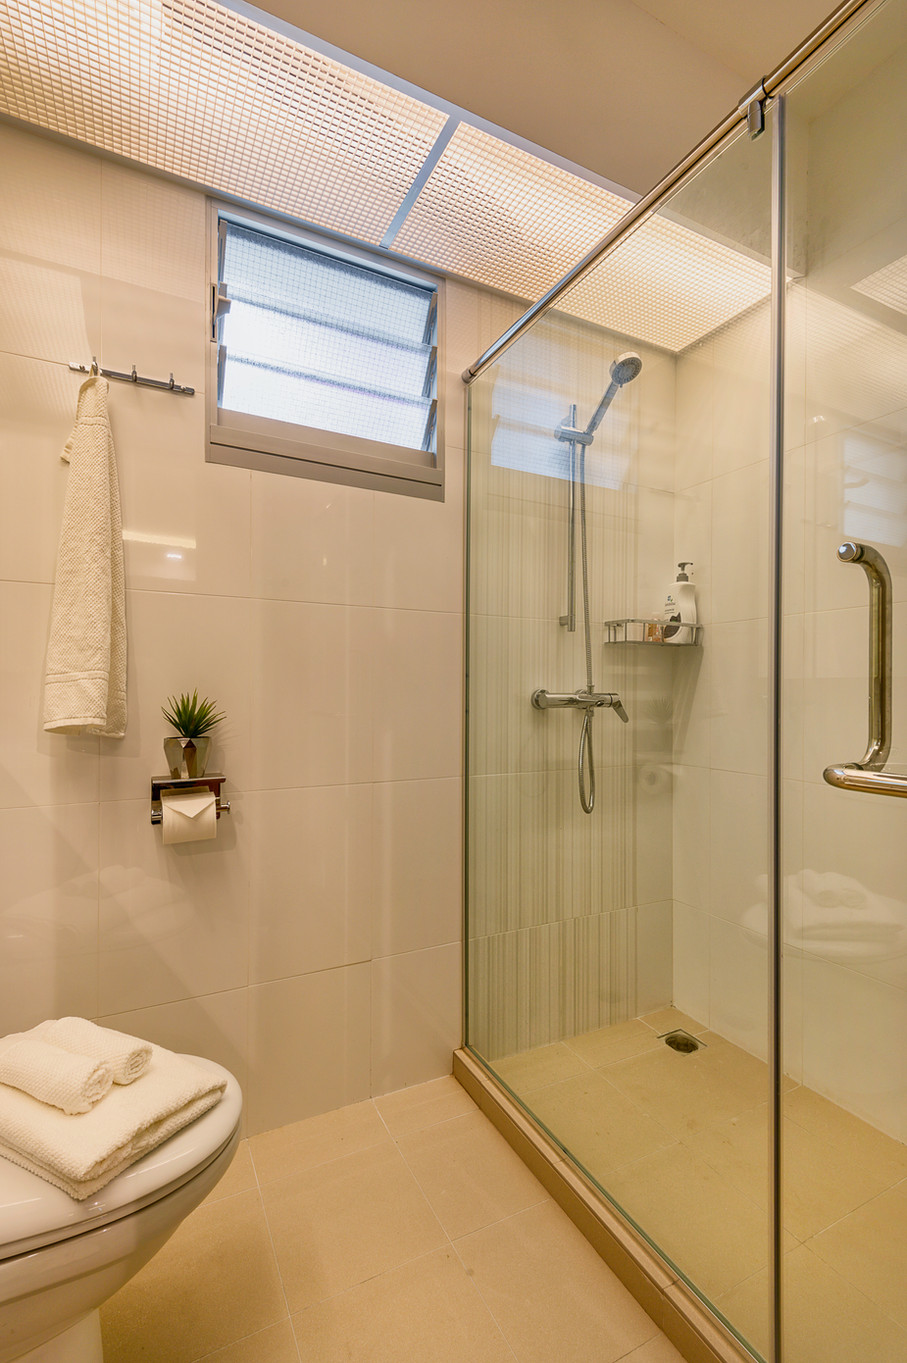 Bukit Batok West Ave 5 | Bathroom